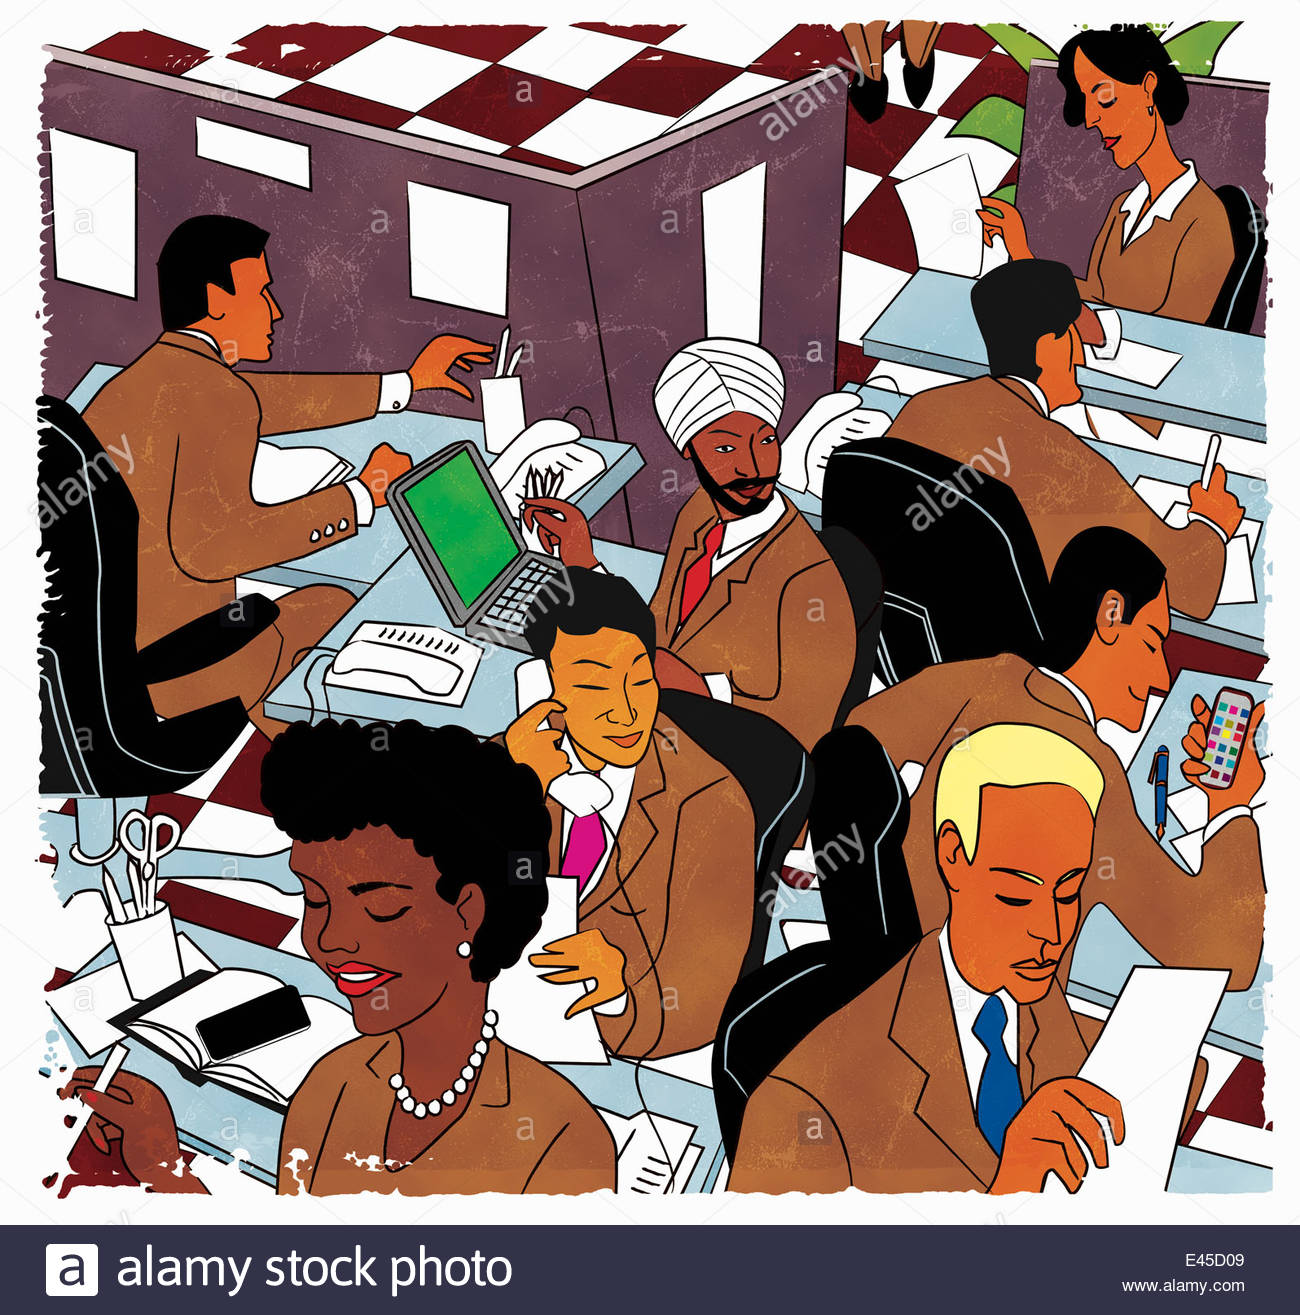 Busy multiethnic office workers - Stock Image